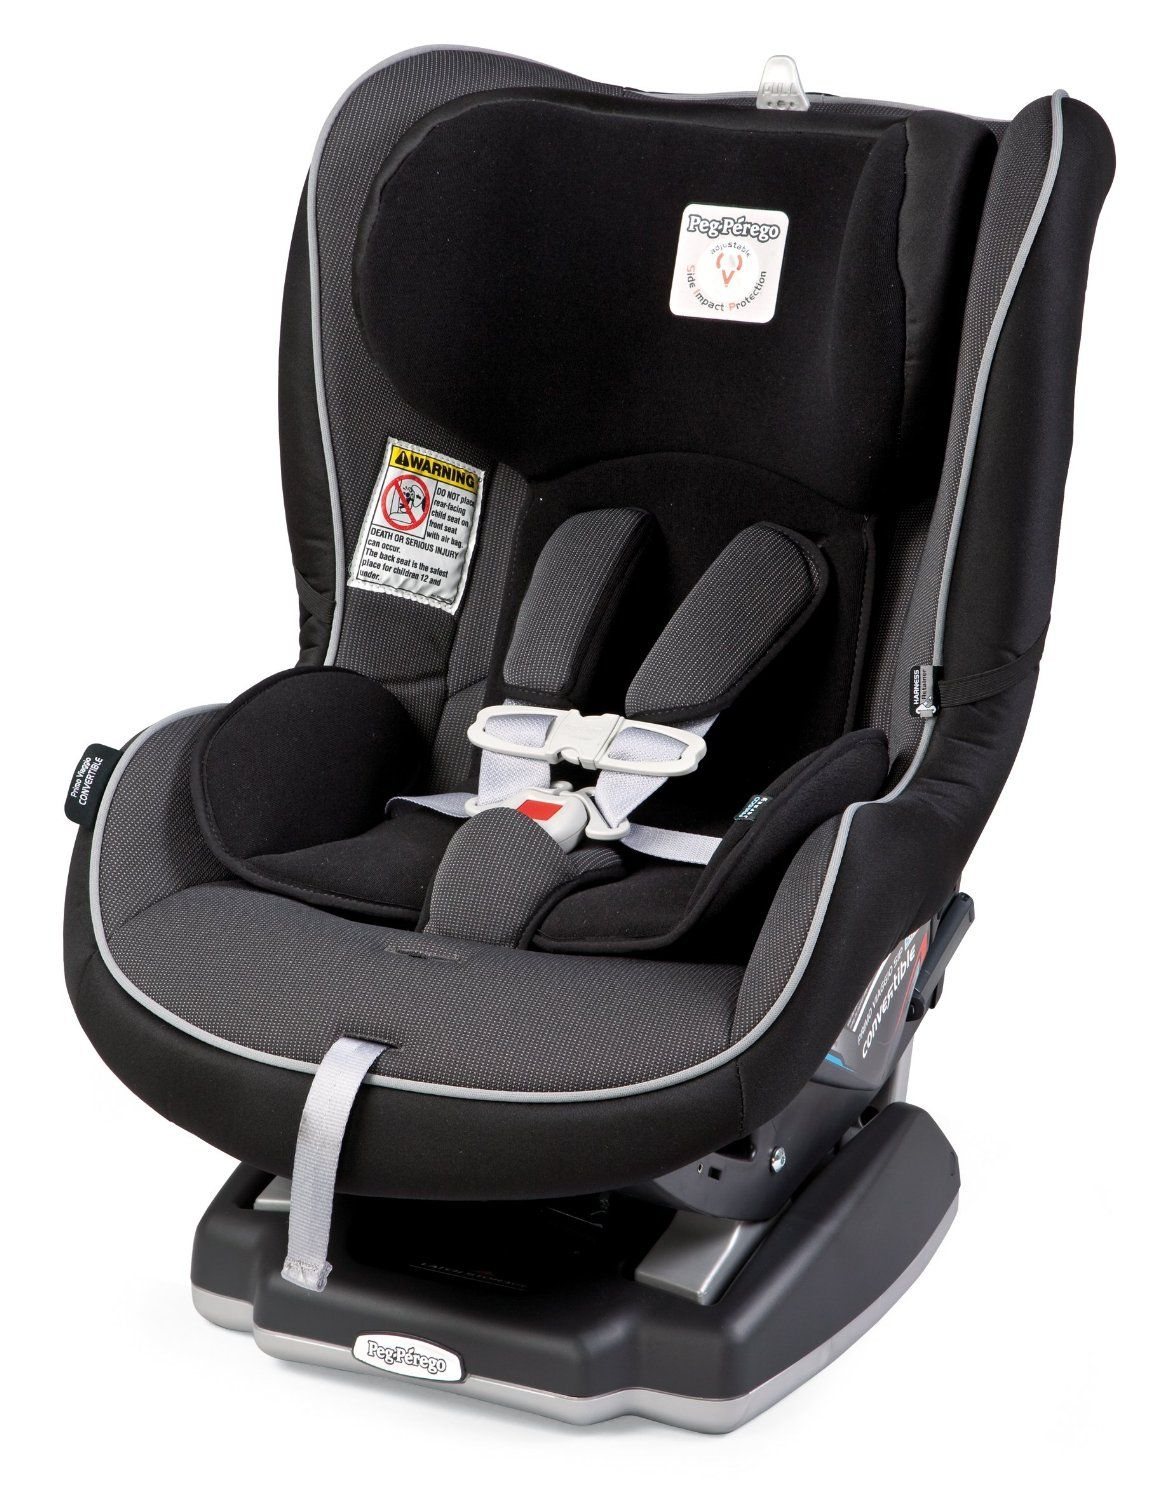 Best Car Seat For 4 Year Old Kids Best Car Seat For Kids Baby